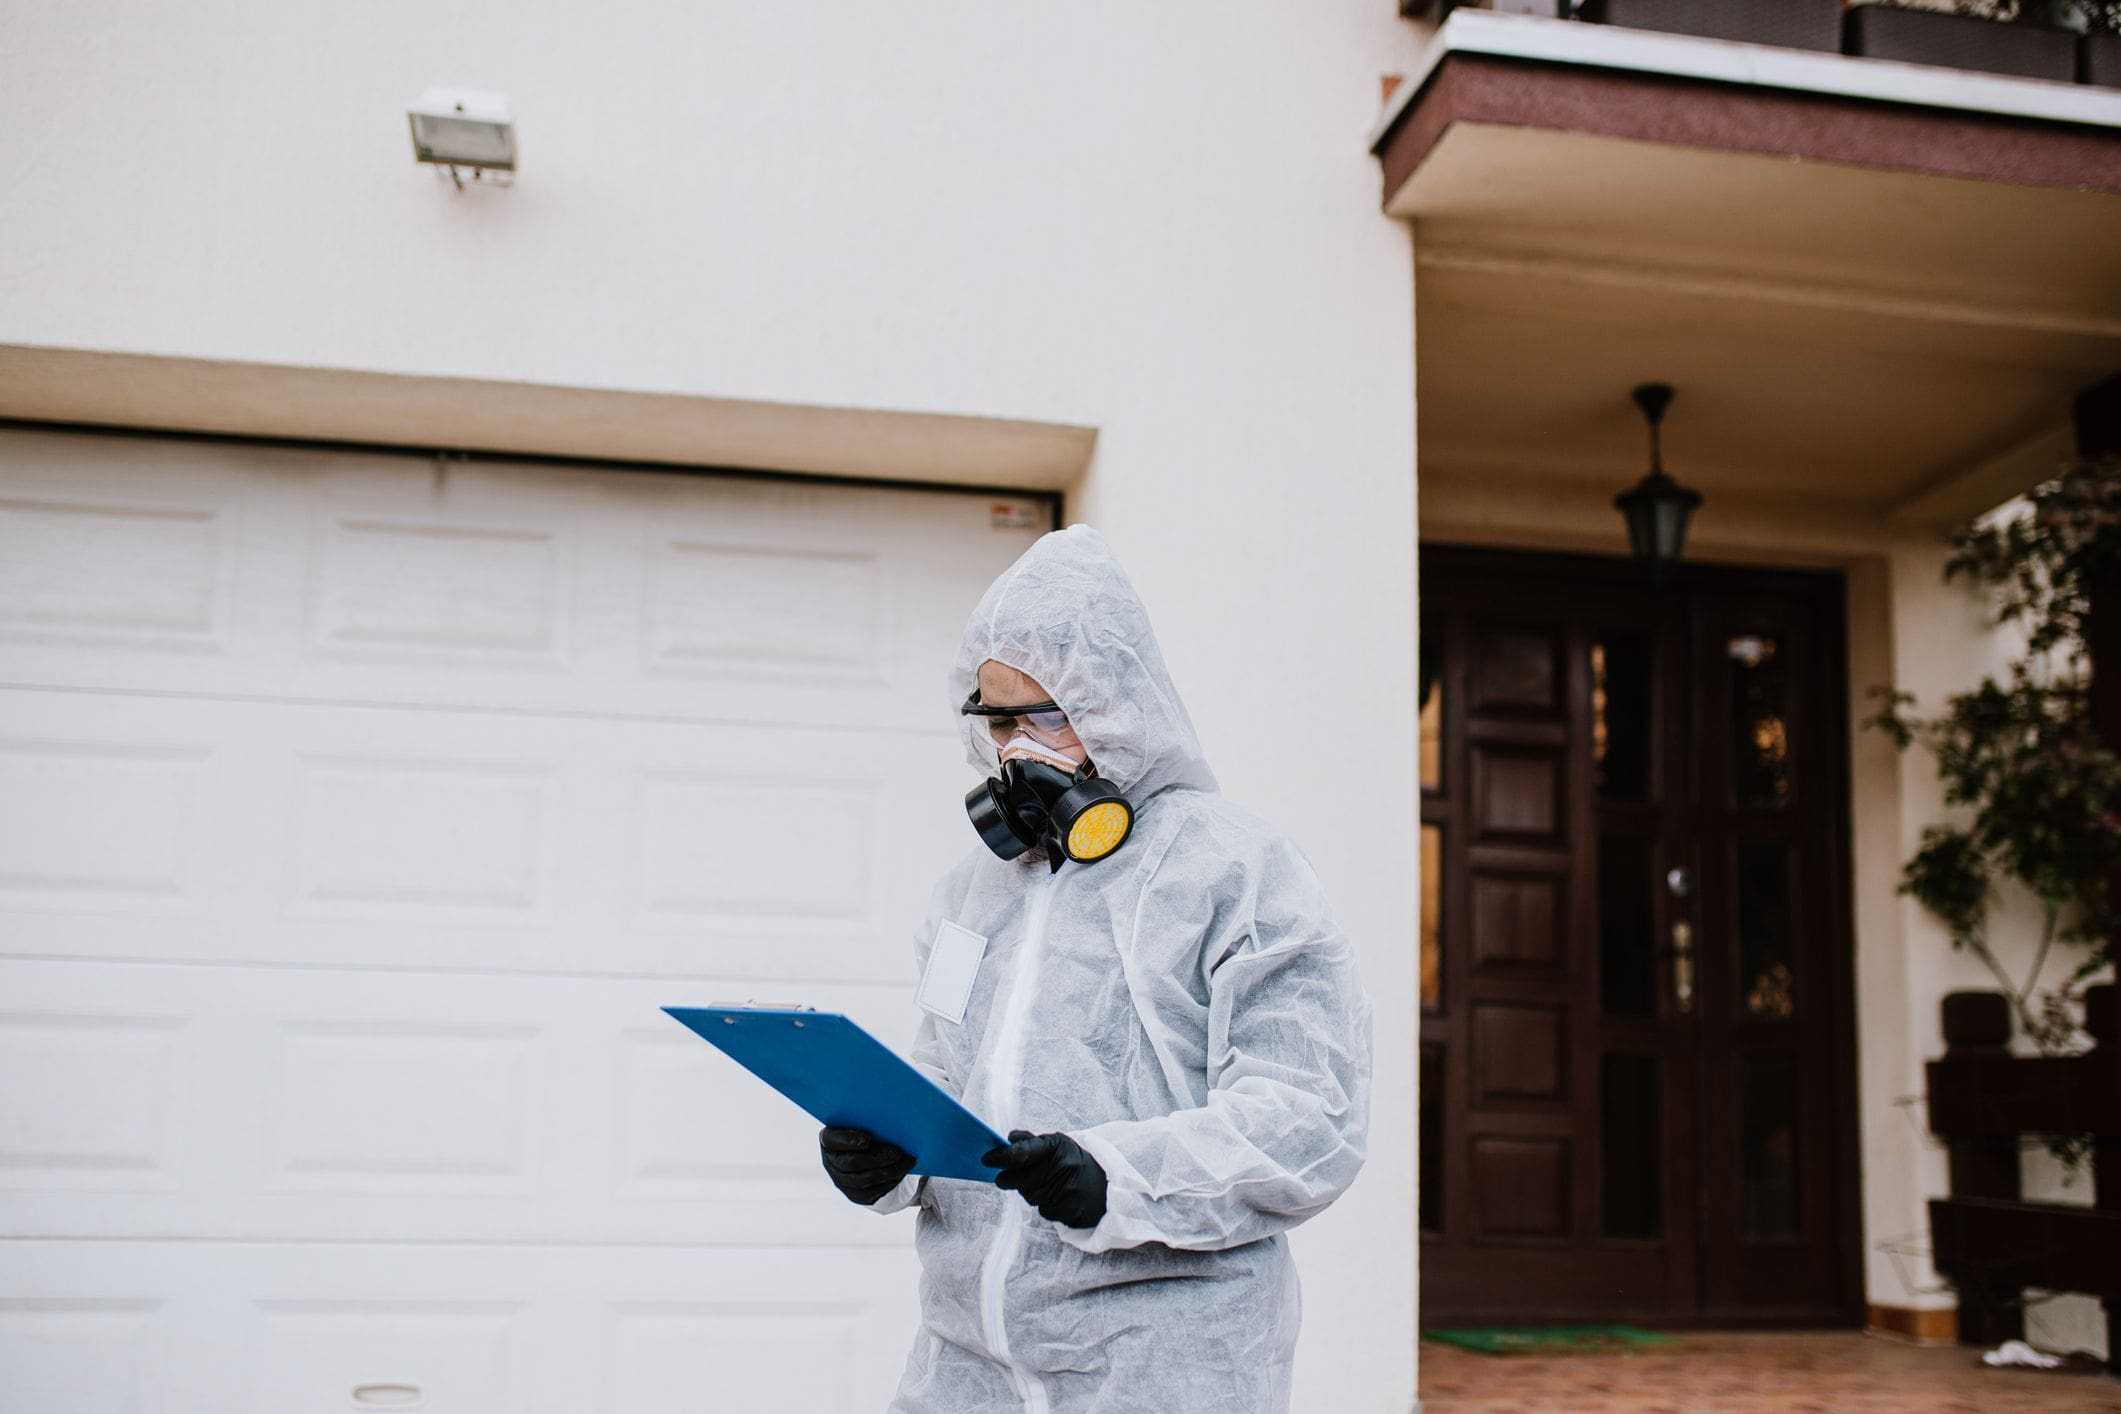 pest control inspector wearing protective gear